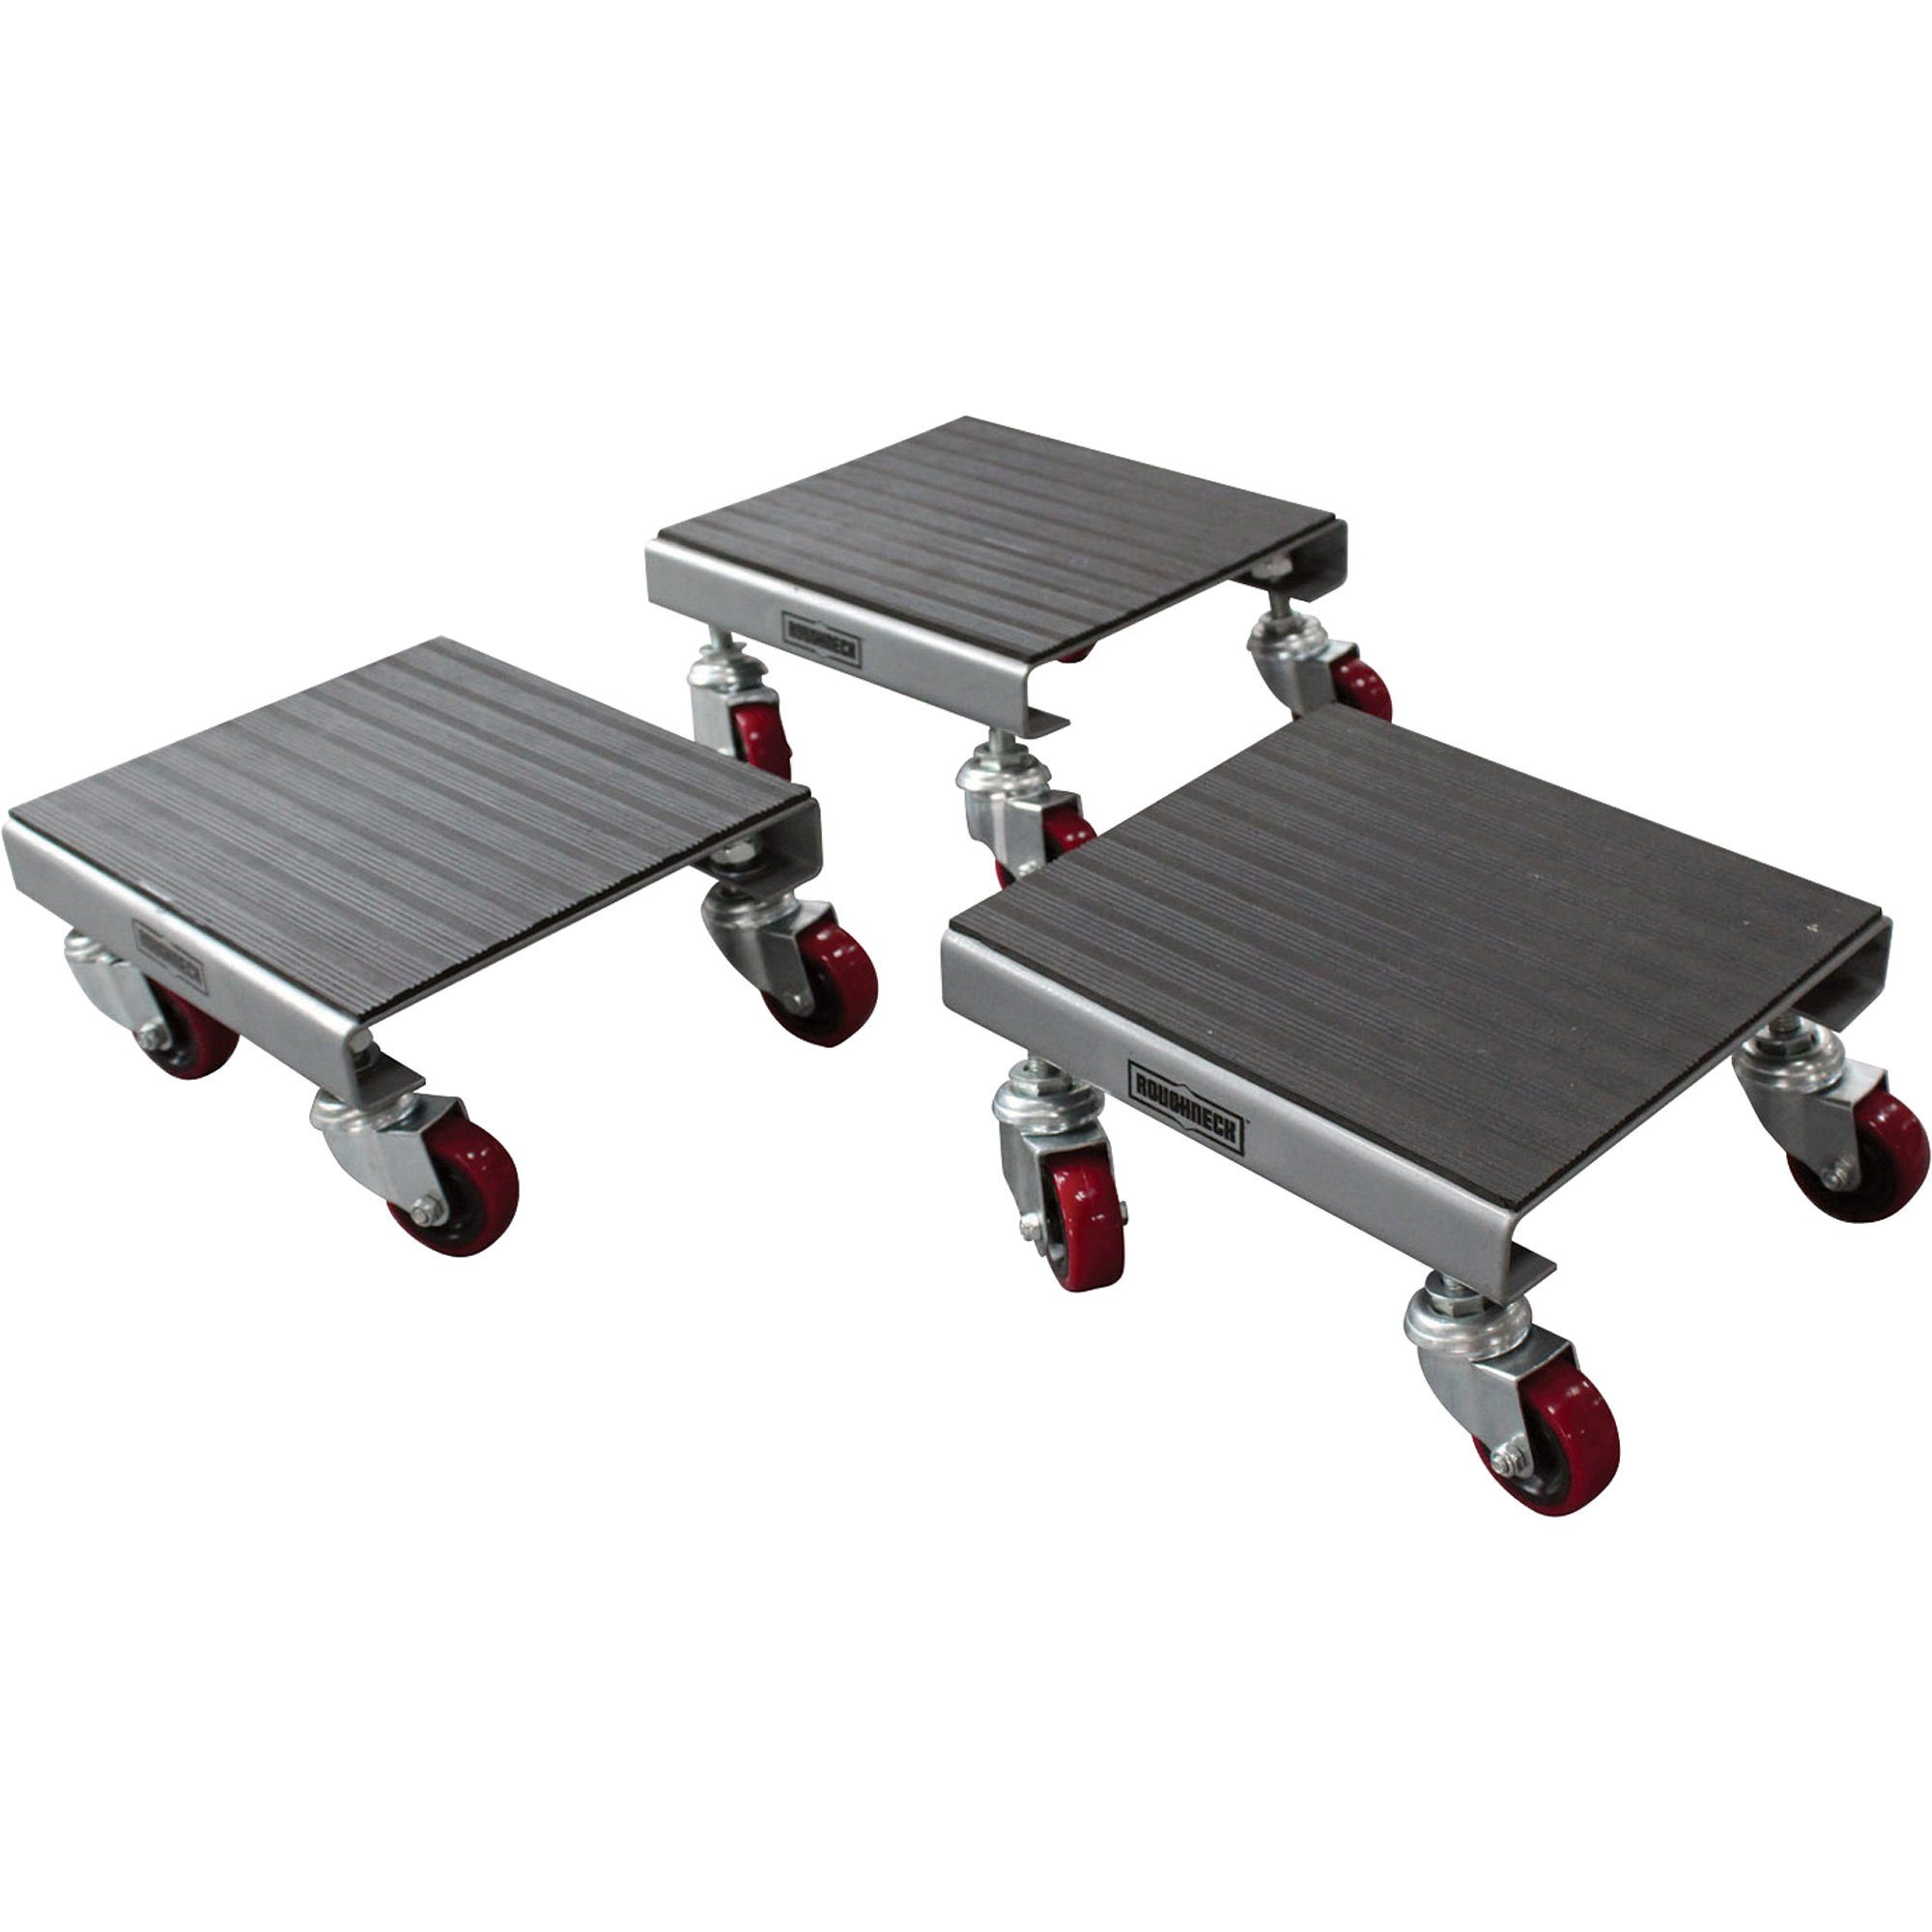 Roughneck 3-Pack Utility Dolly Set - 1500Lb. Capacity, Steel